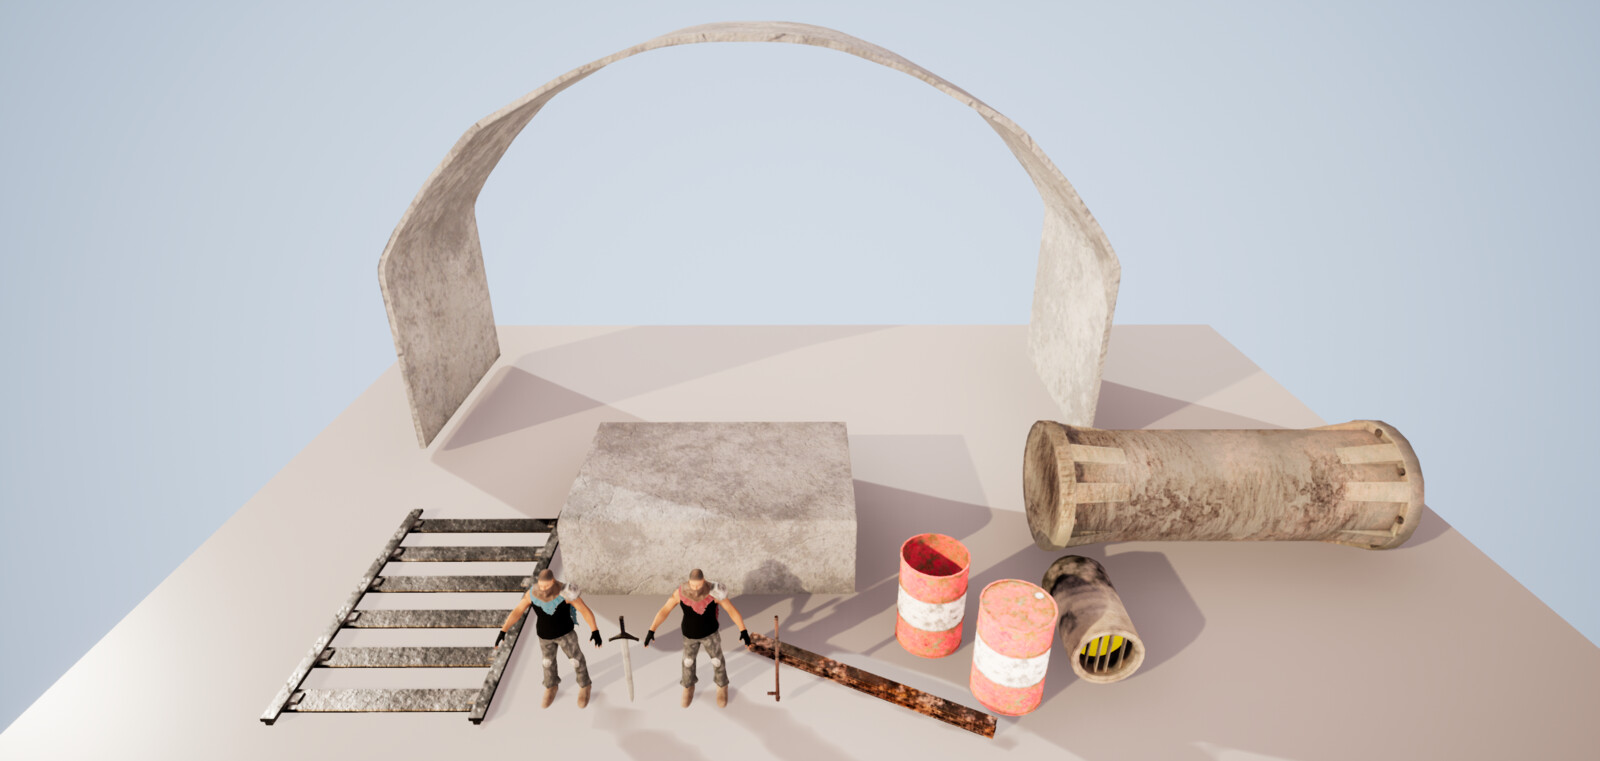 Kit of assets used to make scene